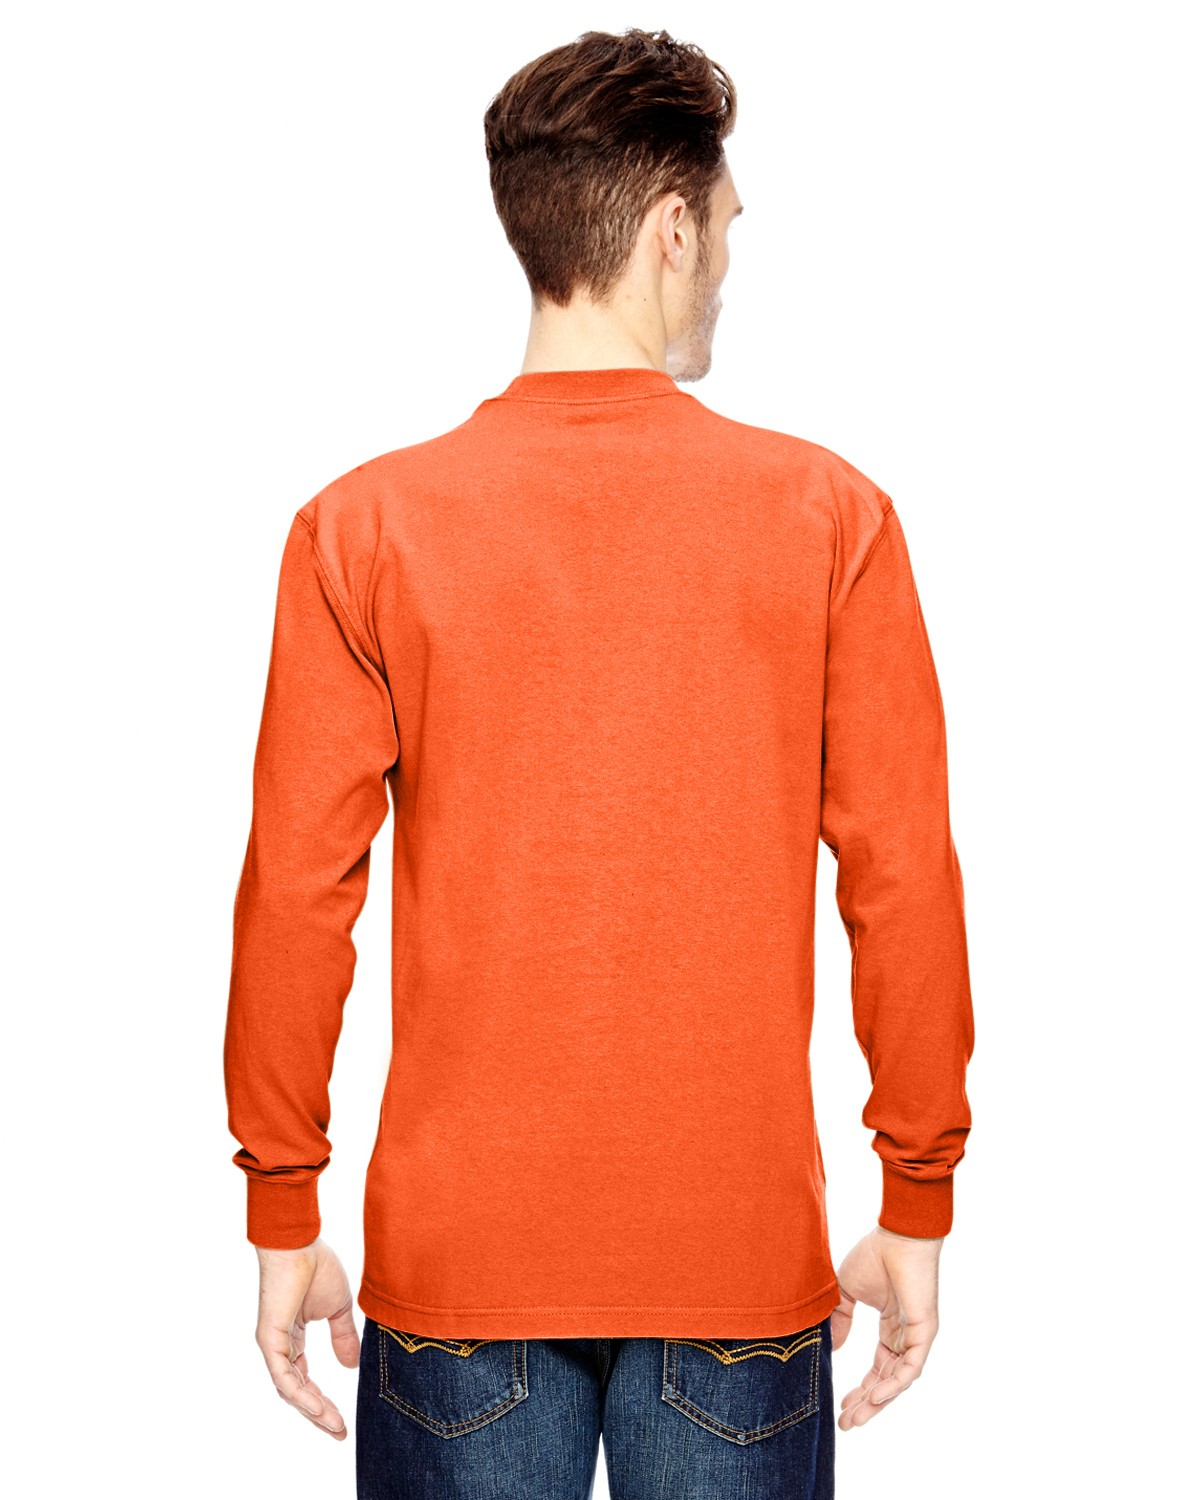 WL450 Dickies ORANGE